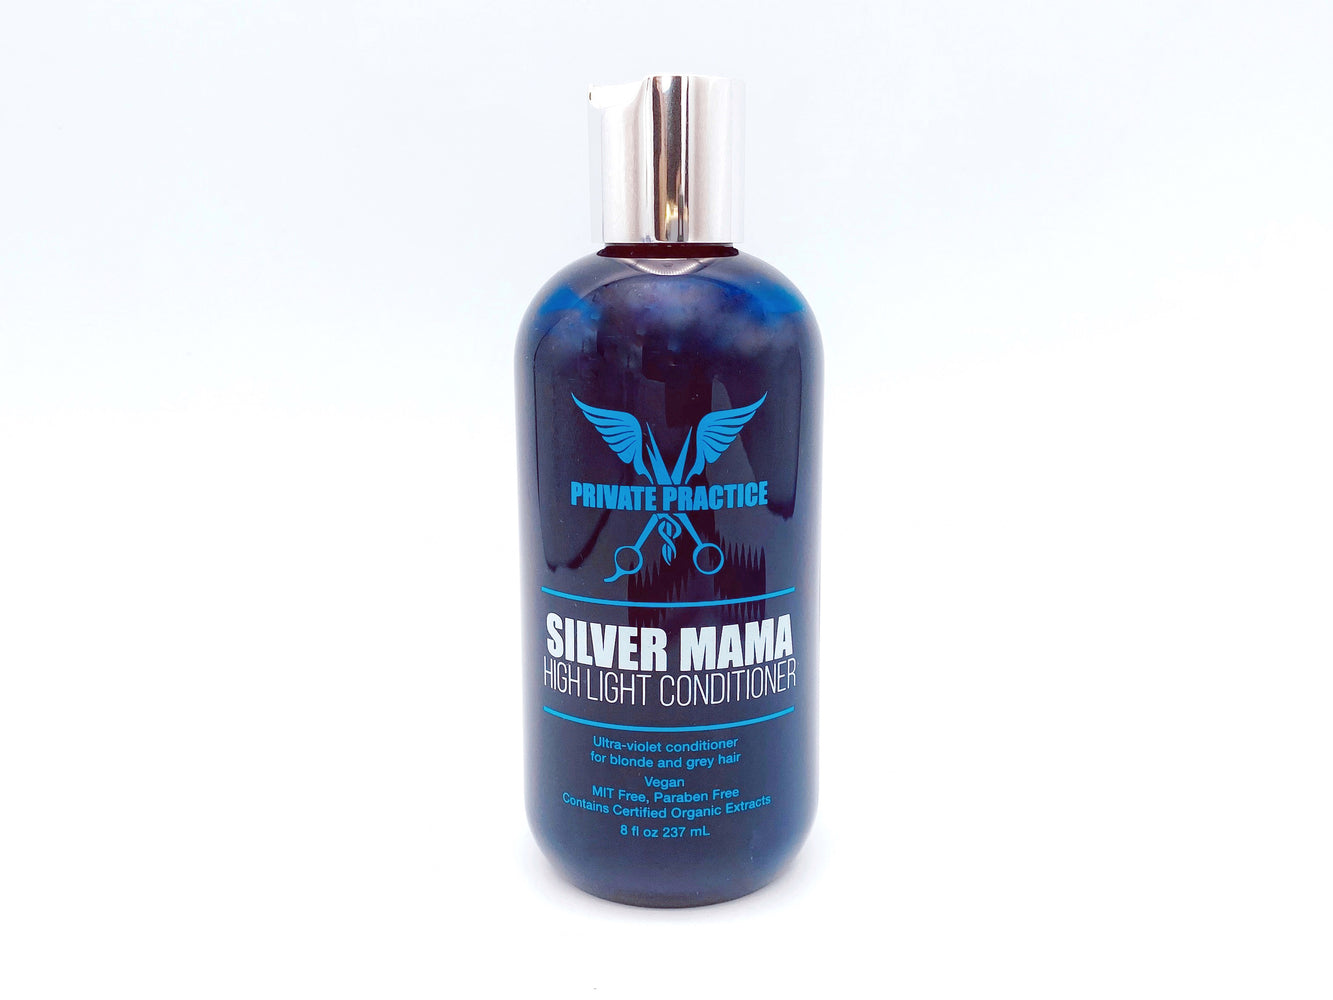 SILVER MAMA HIGHLIGHT CONDITIONER